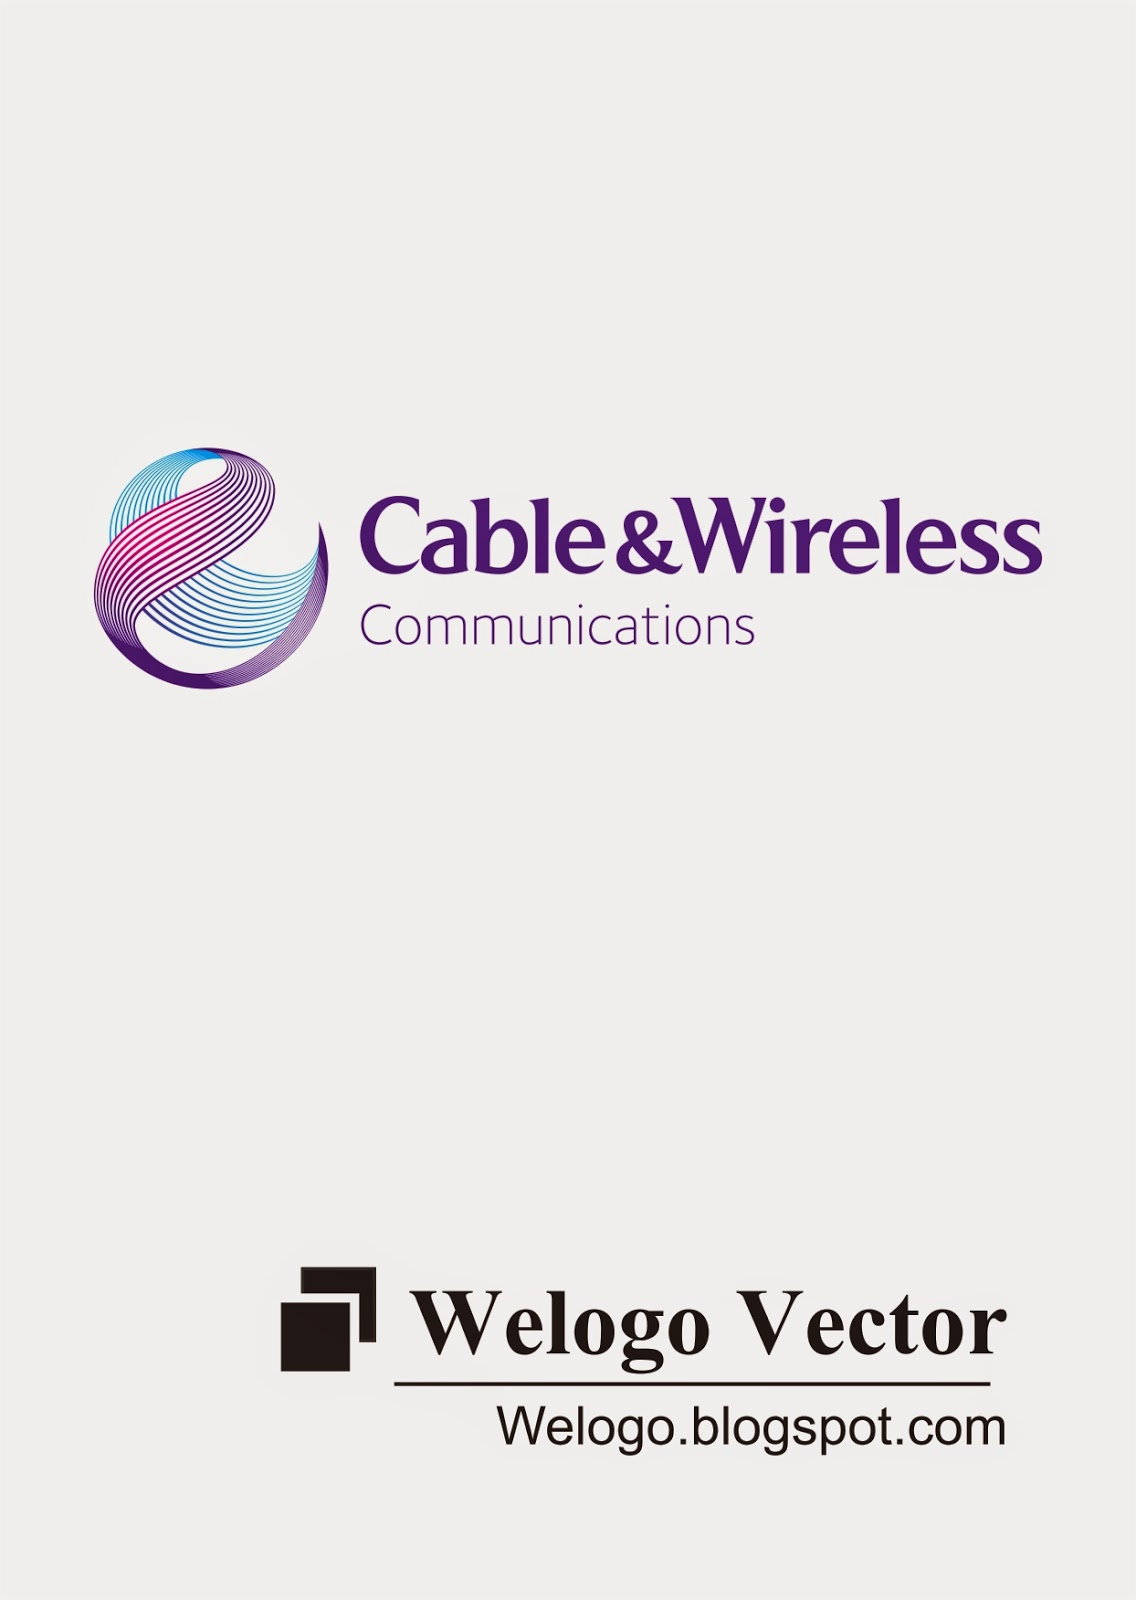 Cable and Wireless Logo Vector | welogo